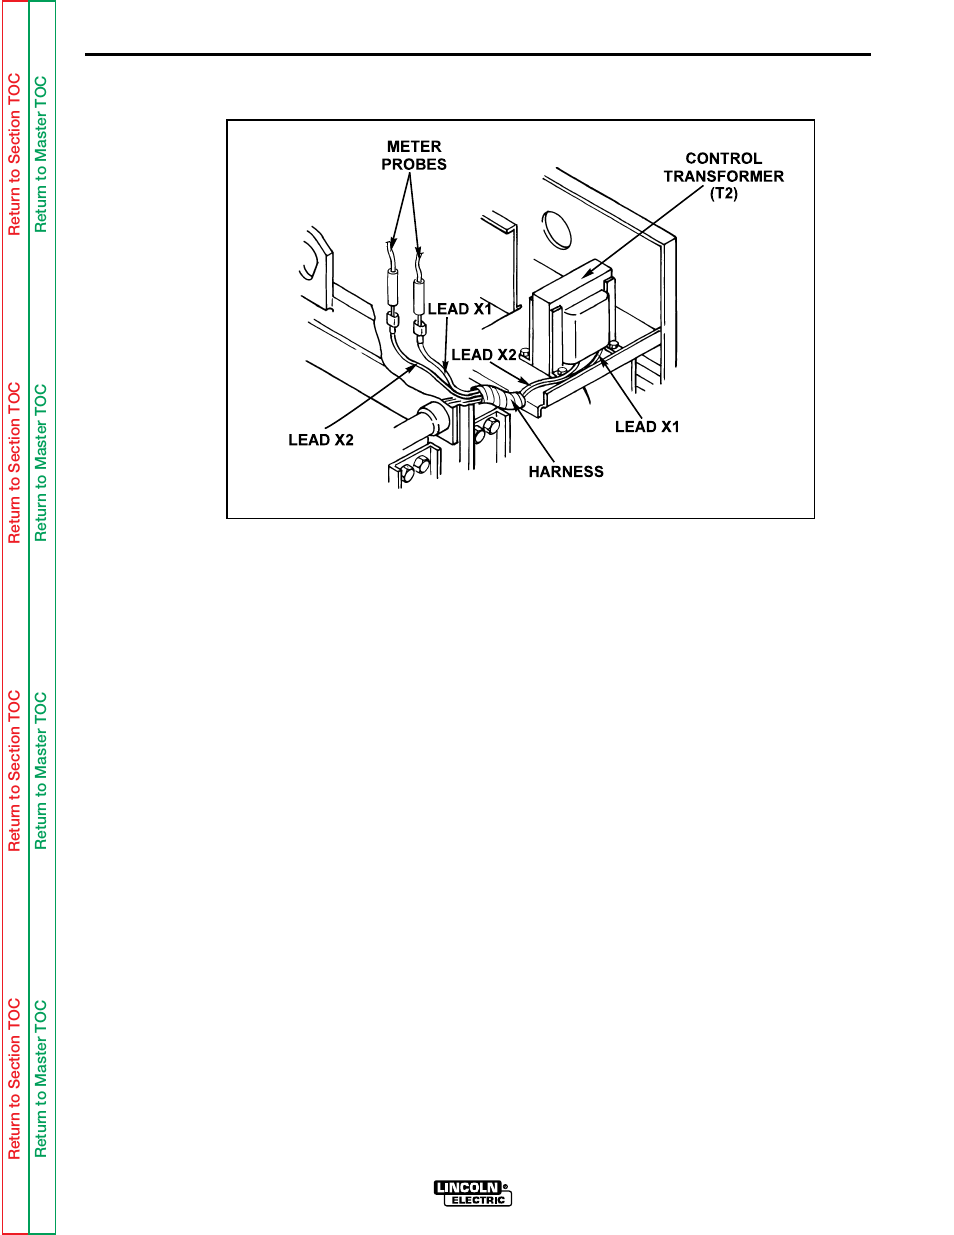 1965 Lincoln Wiring Diagram Electrical Diagrams Corvair Dc 1000 Library Of U2022 Ls